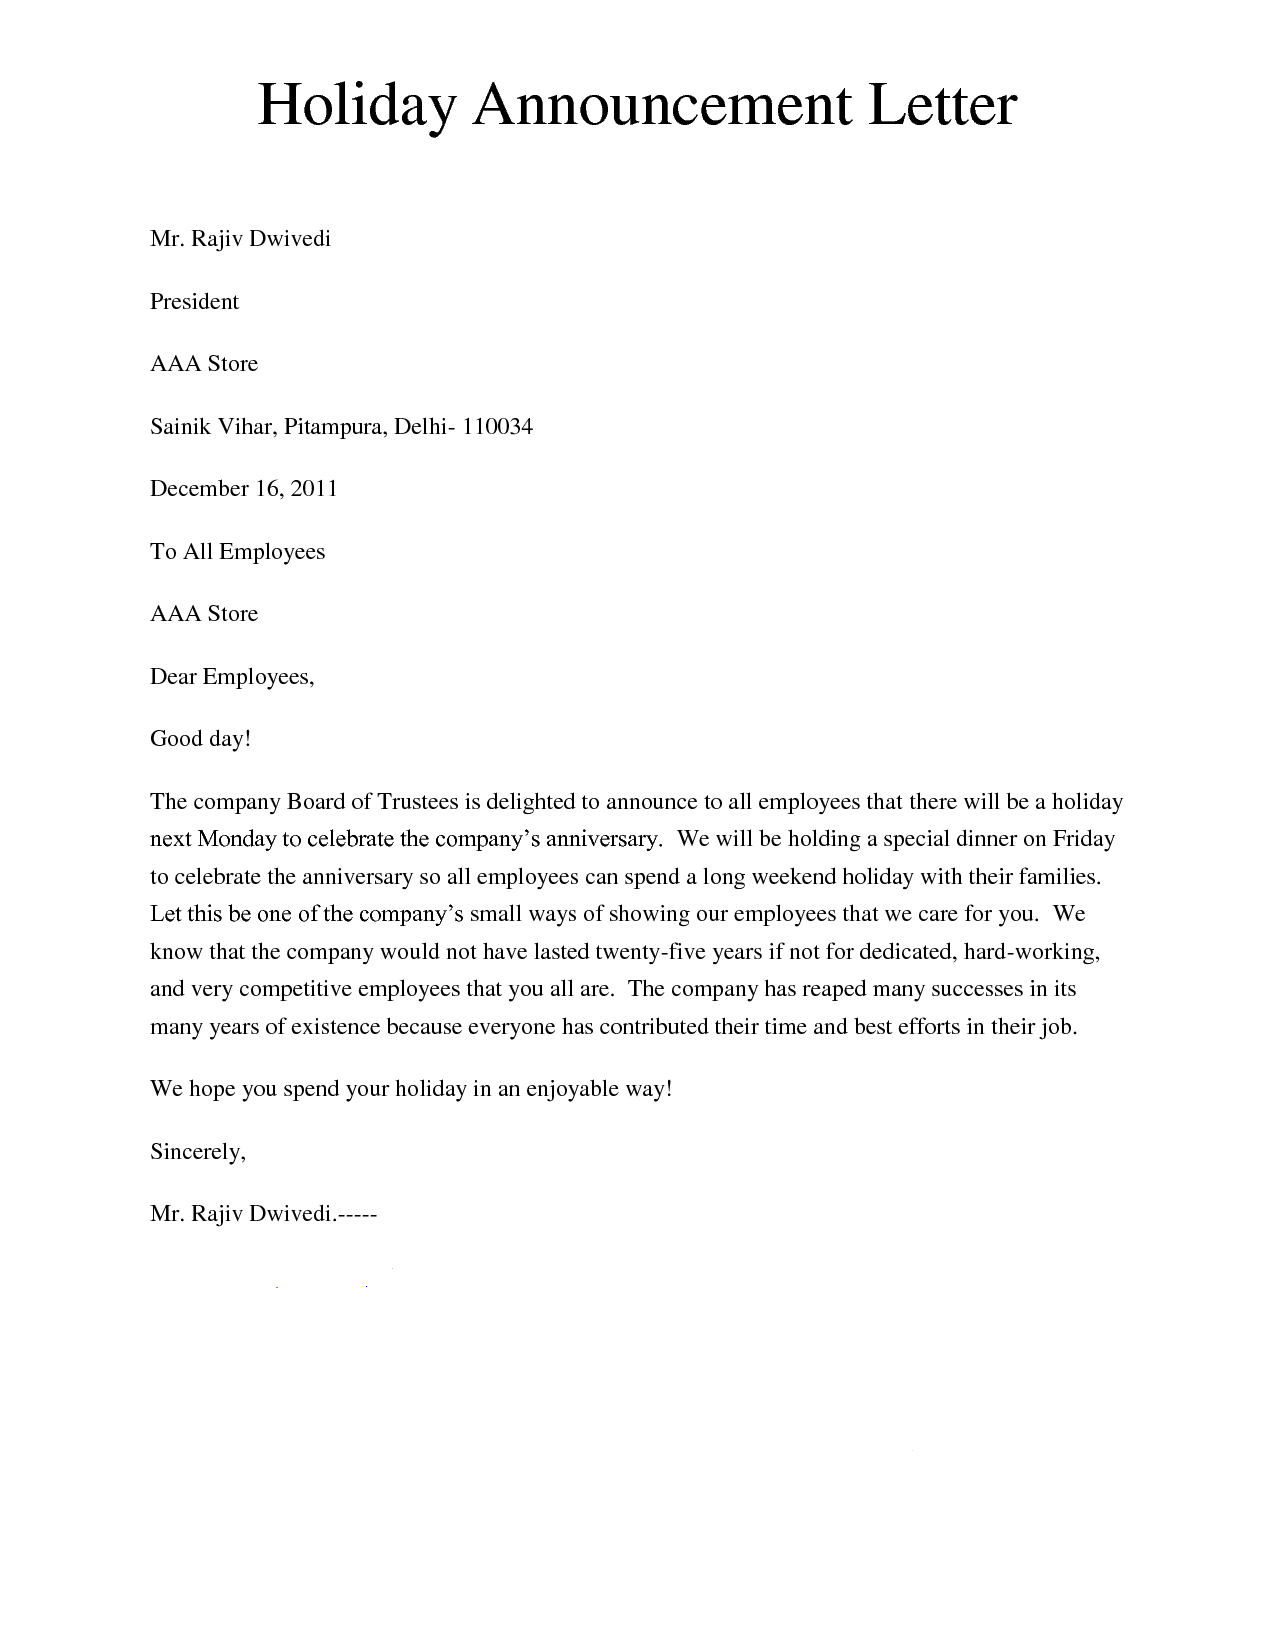 holiday letter template example-Holiday announcement letter Giving a letter to inform about the holiday called holiday notice letter 12-l